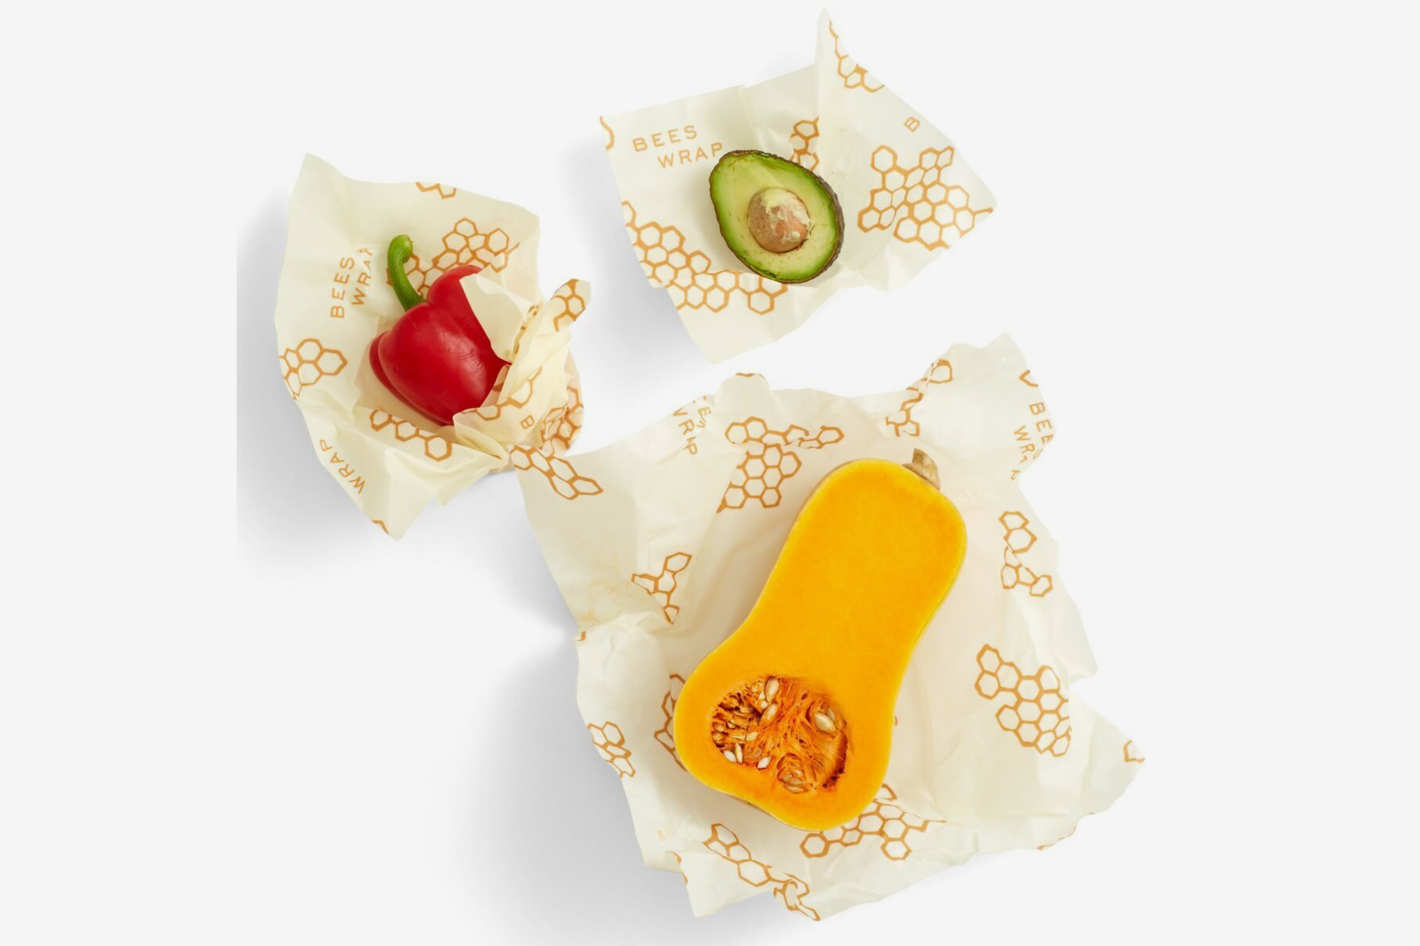 Bee's Wrap - Assorted 3-Pack